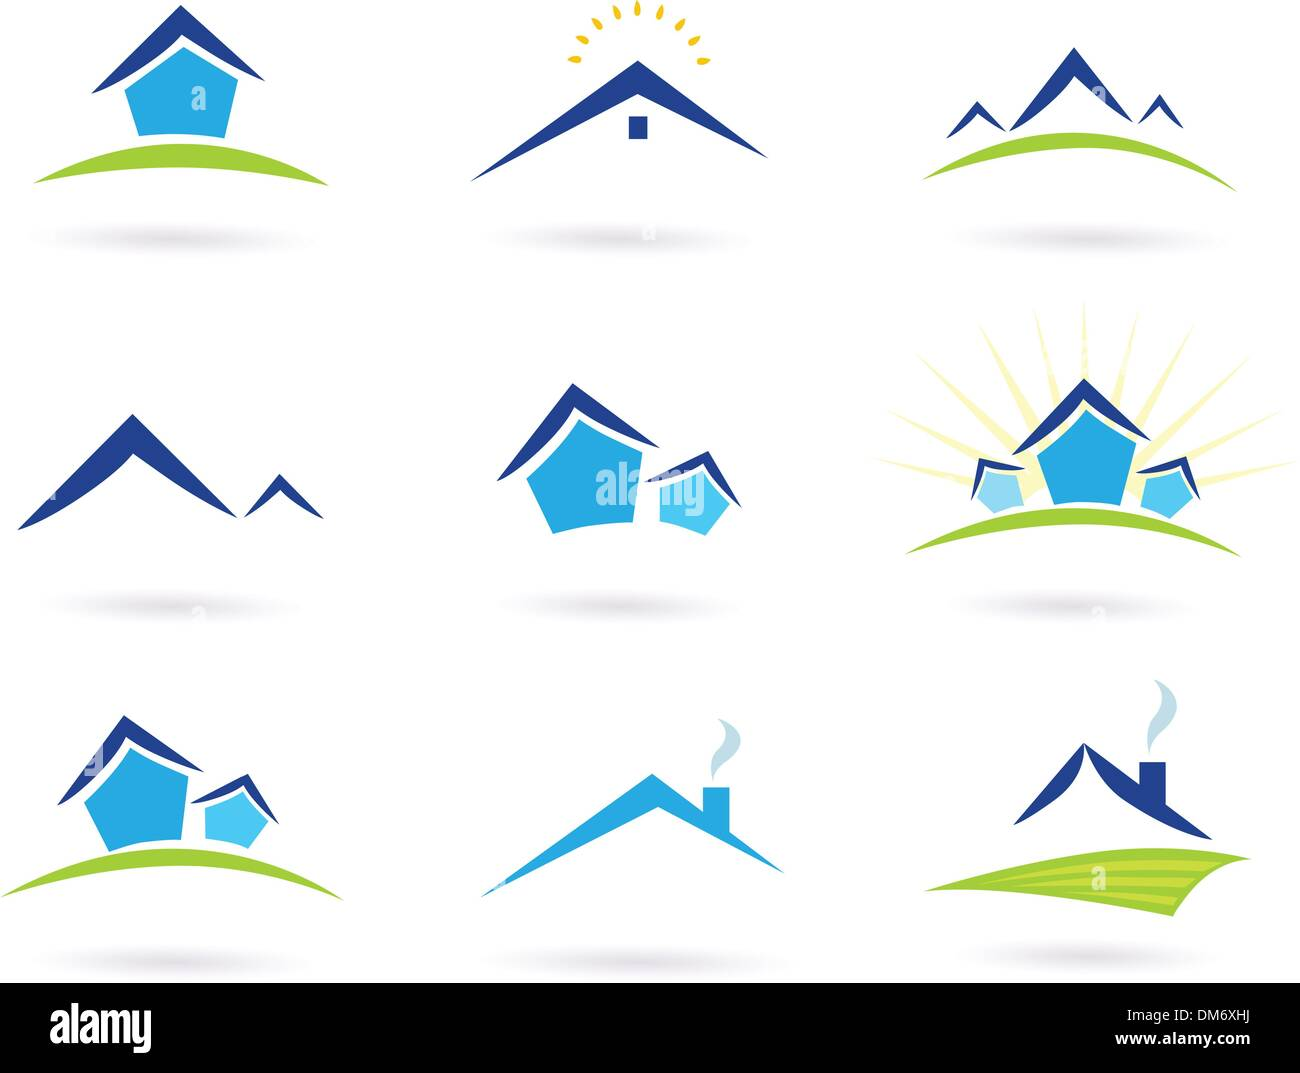 Real estate / houses logo icons isolated on white - blue and green - Stock Vector